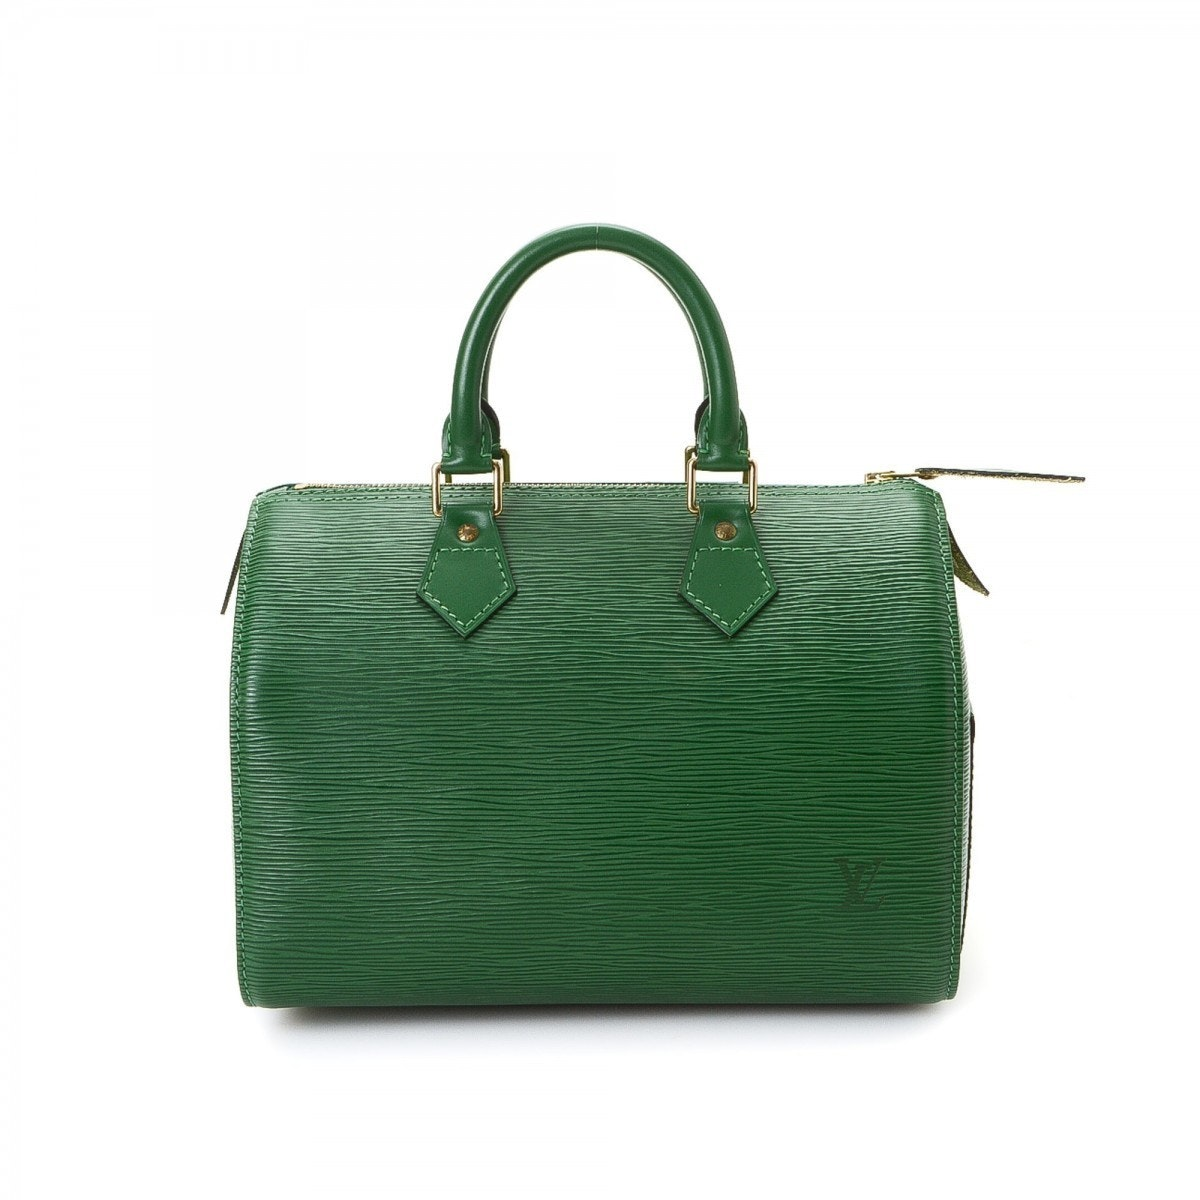 Louis Vuitton Speedy Epi 25 Borneo Green